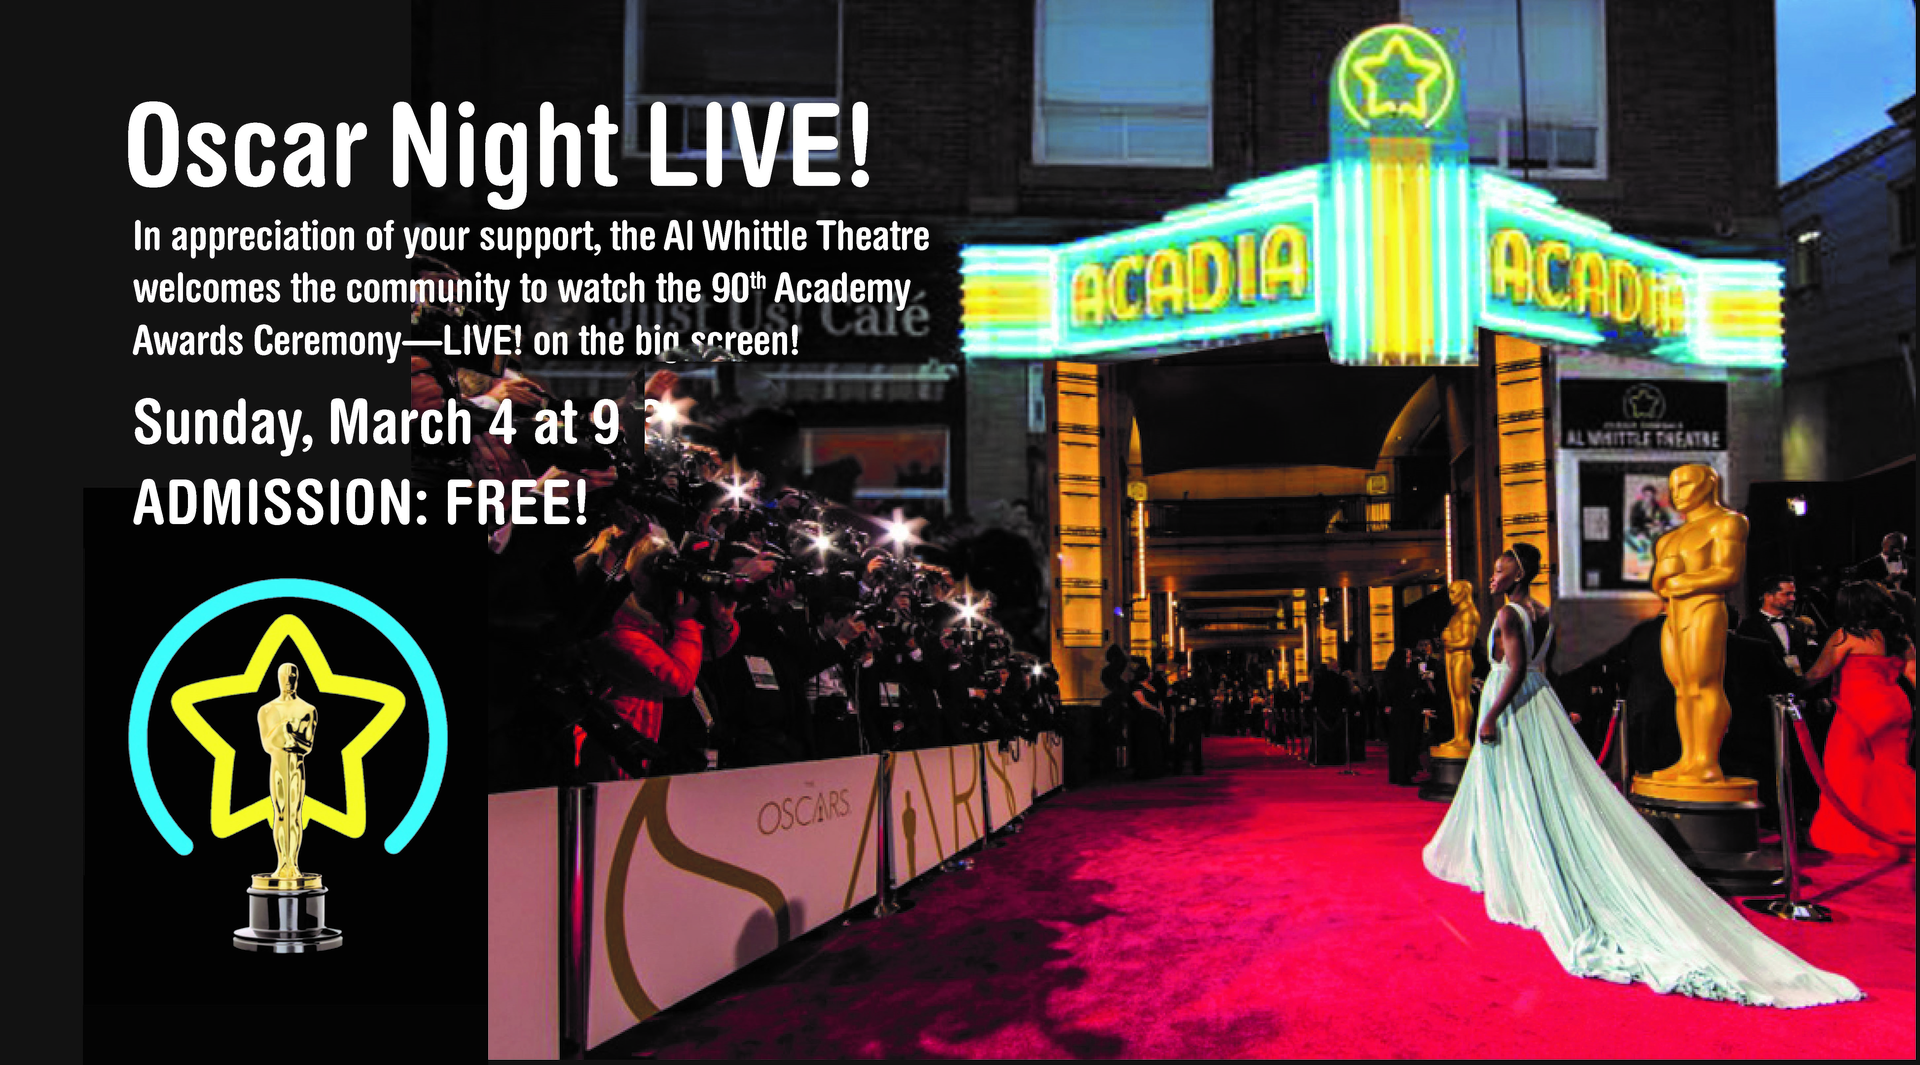 Academy Awards Ceremony at Al Whittle Theatre, Wolfville ...